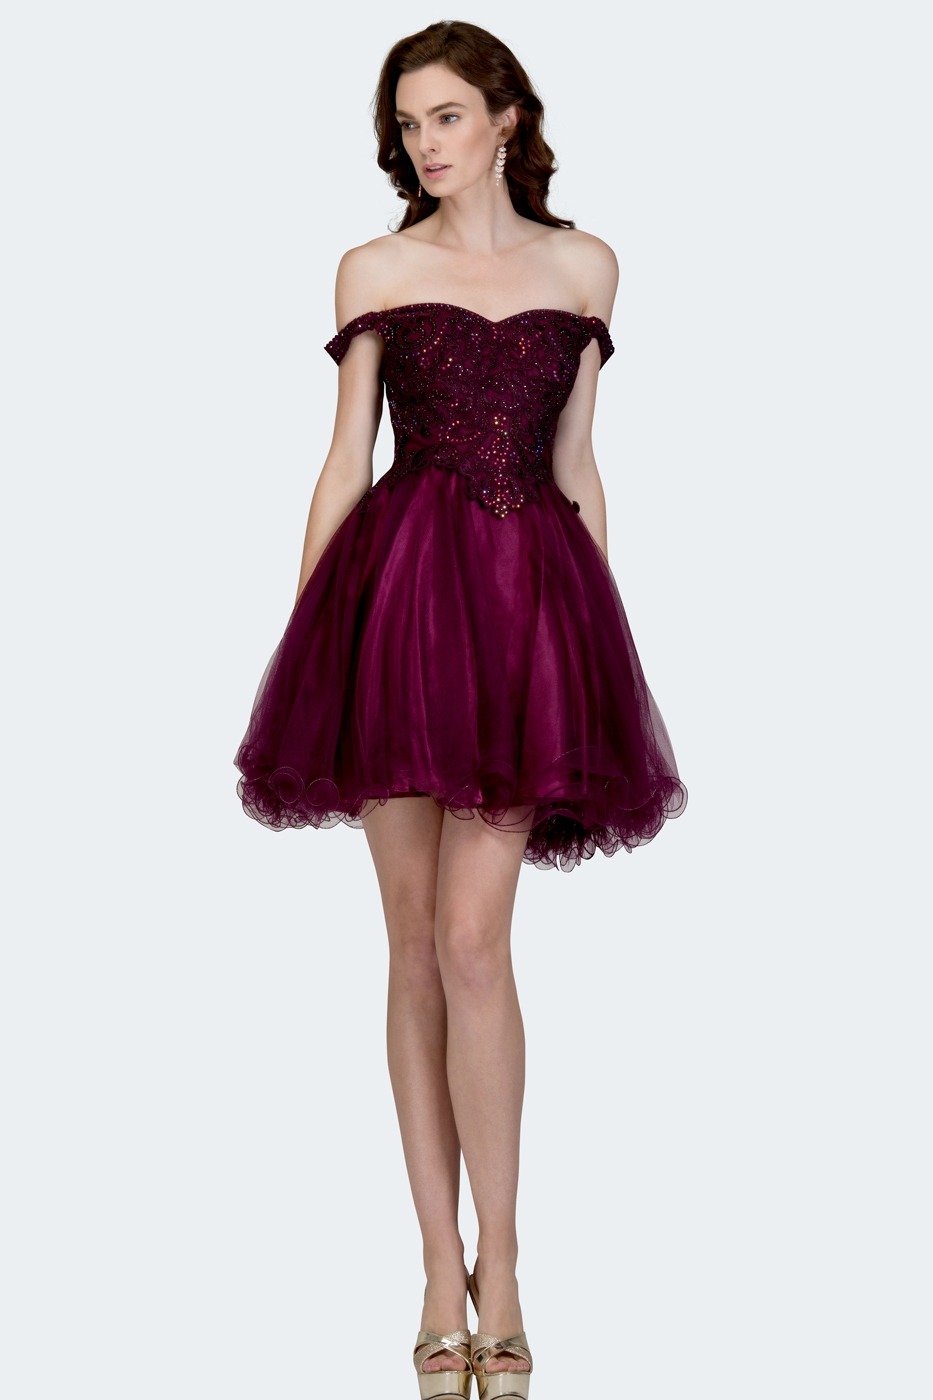 Homecoming Prom Dress Cocktail Party - orangeshine.com